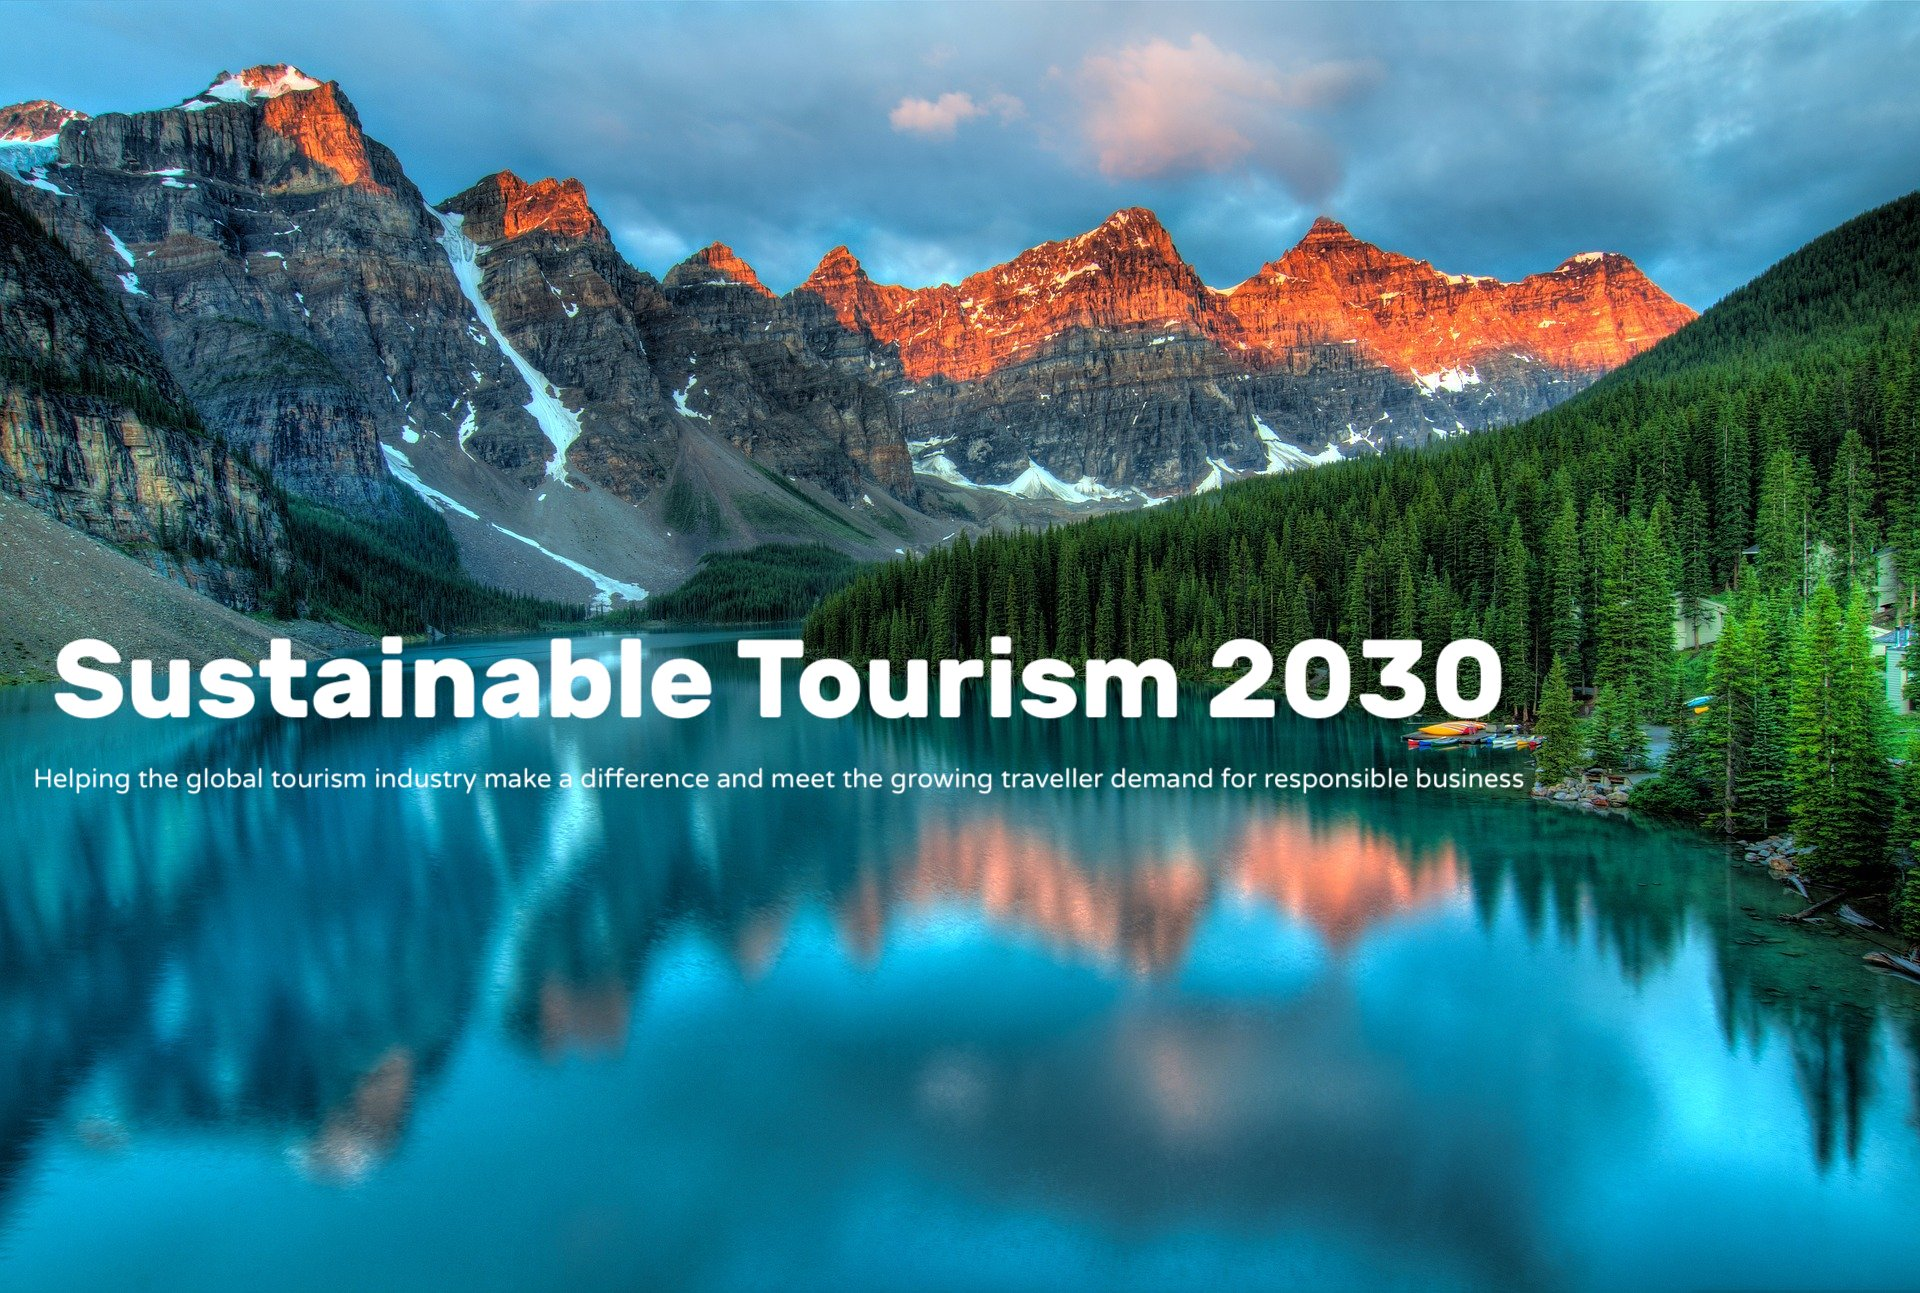 Sustainable Tourism 2030